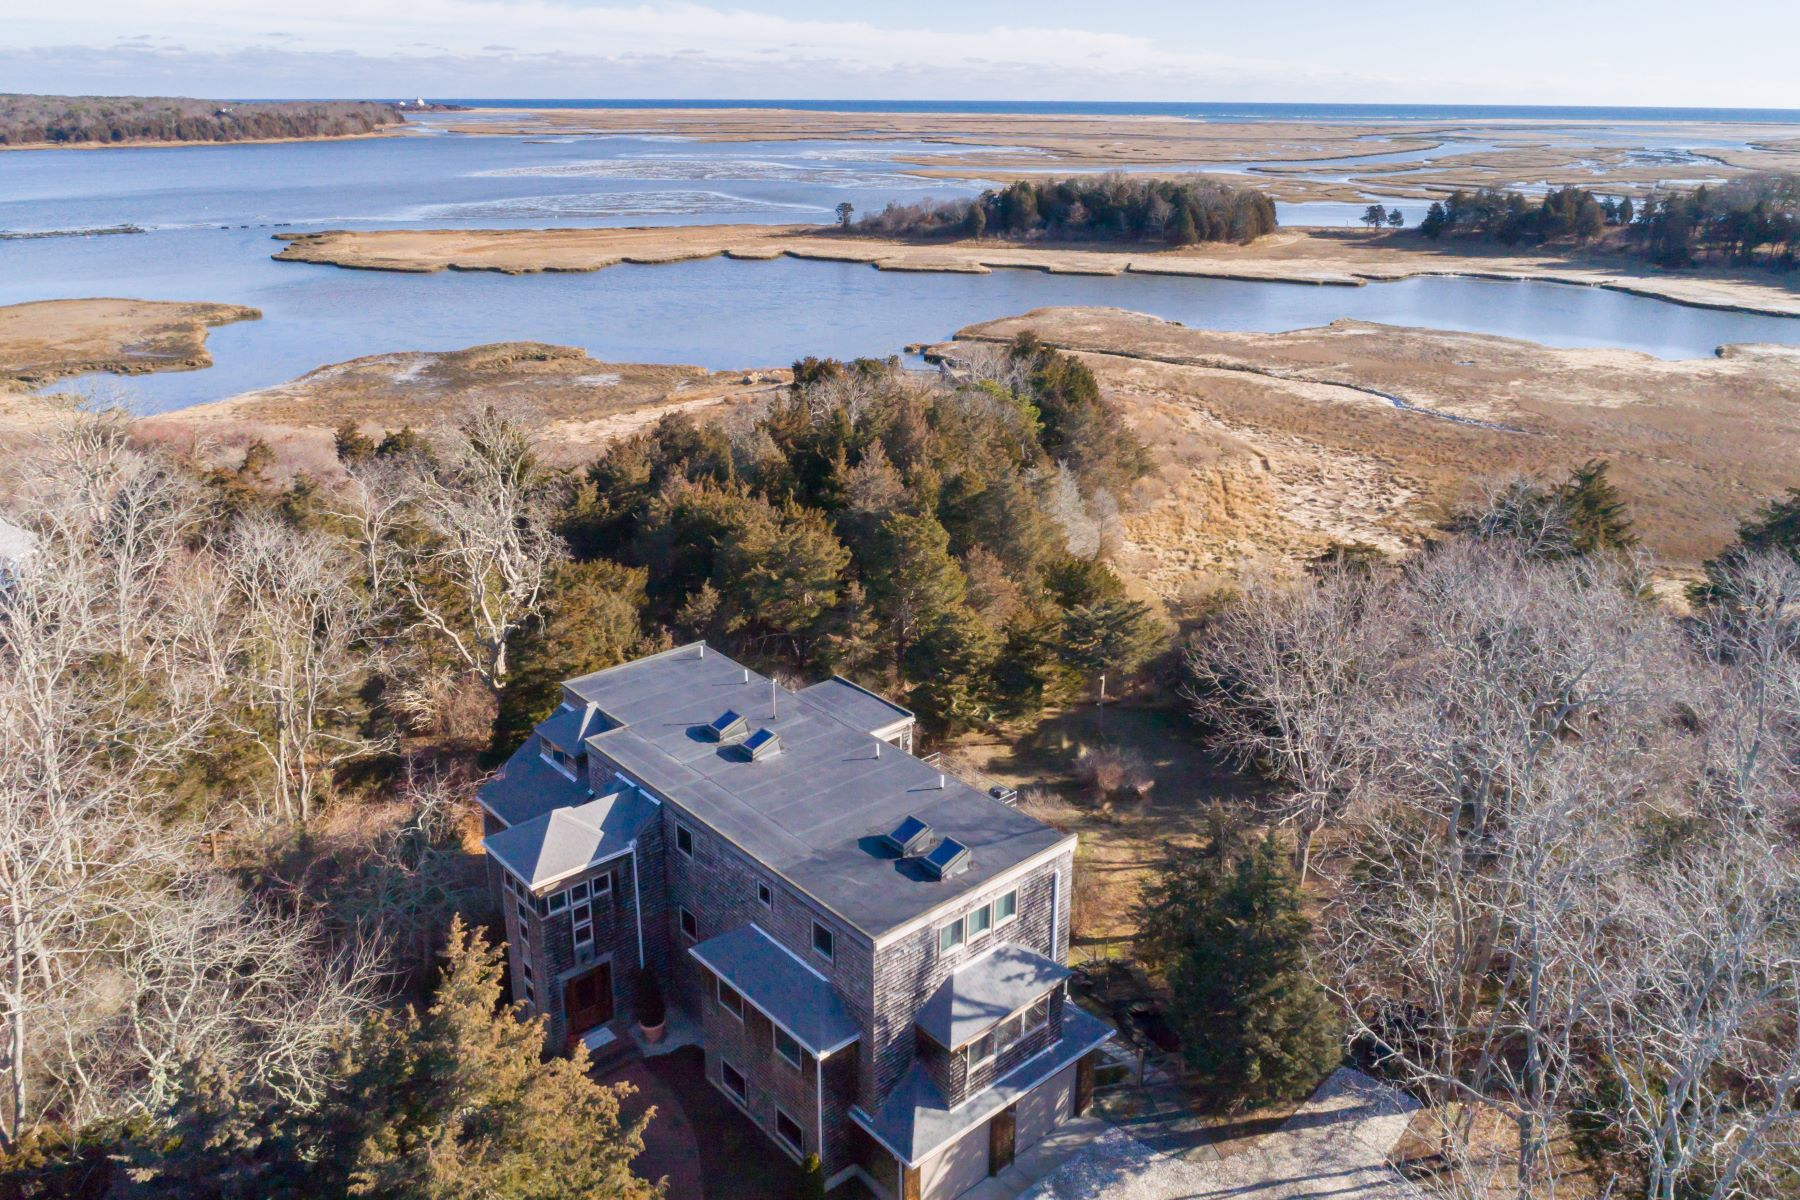 Casa Unifamiliar por un Venta en 4 Rabbit Run, Eastham, MA Eastham, Massachusetts, 02642 Estados Unidos